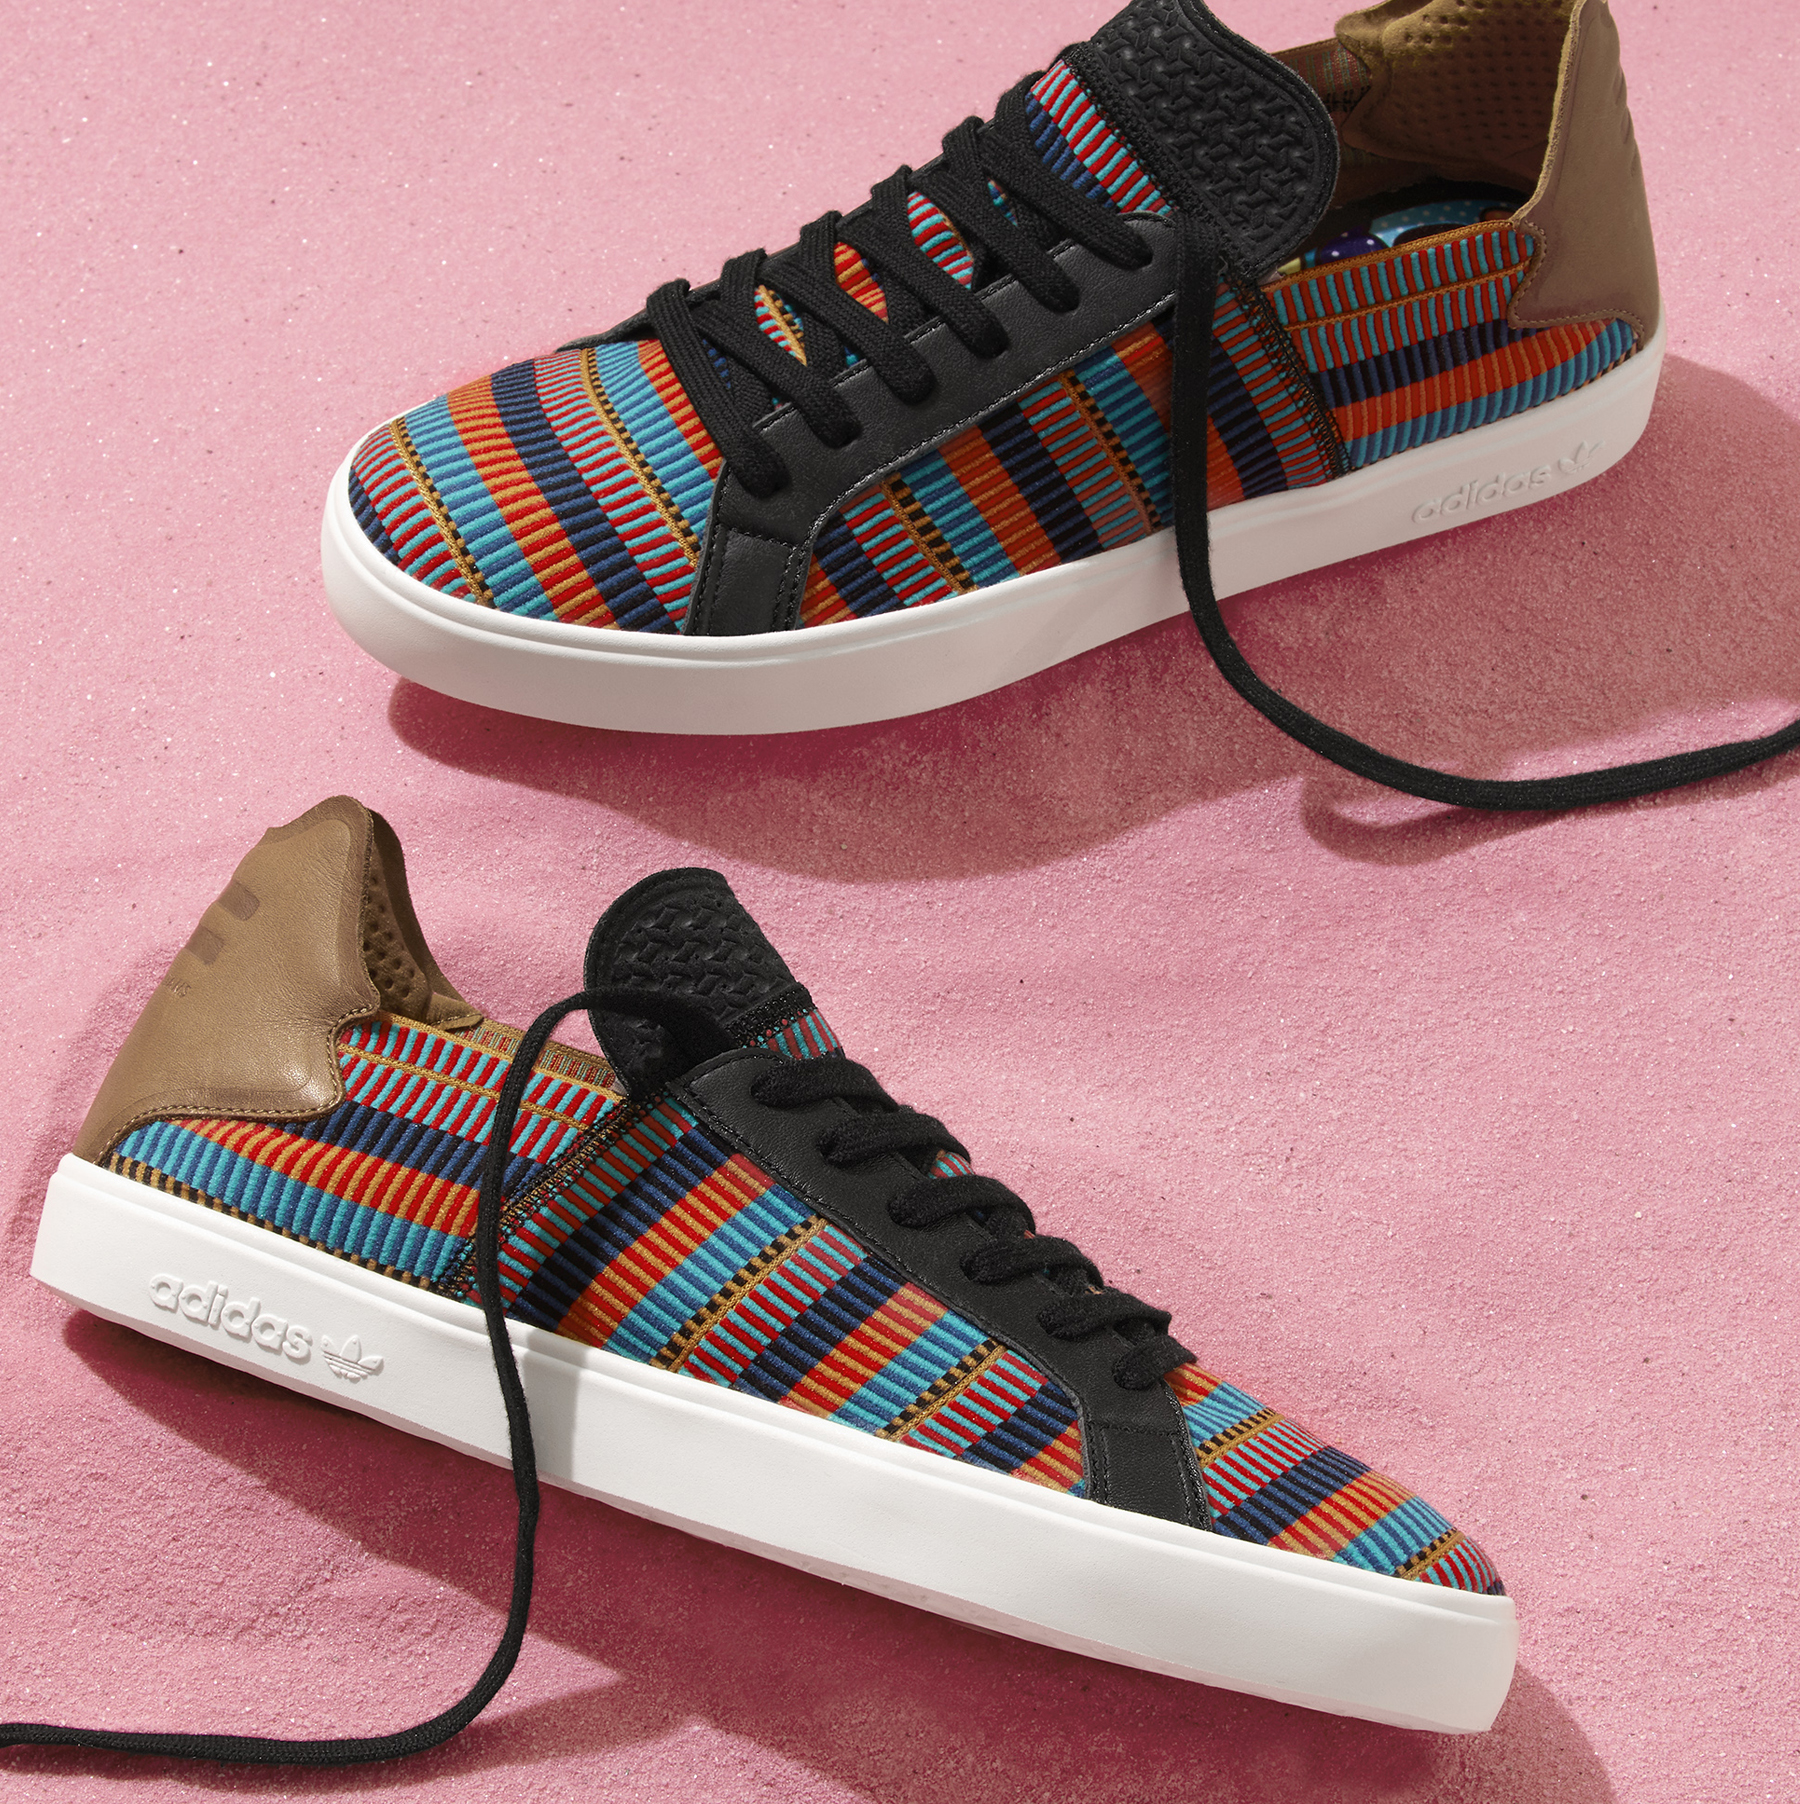 huge discount 09a2b 3c871 The Elastic Lace Up sneaker in multicolored stripes. Photo by Viviane  Sassen for Adidas.